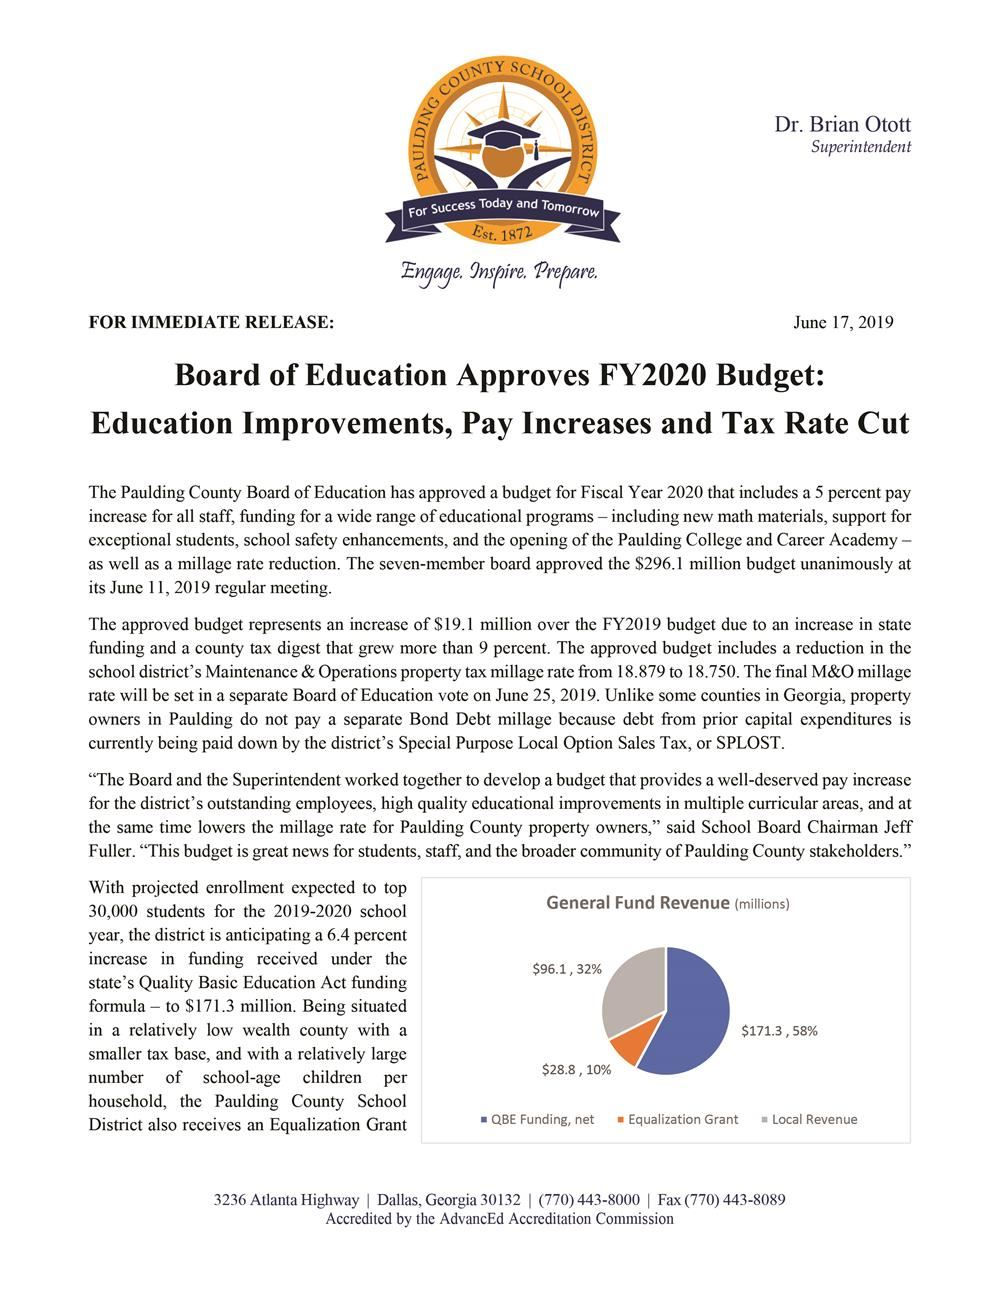 School Board Approves FY2020 Budget